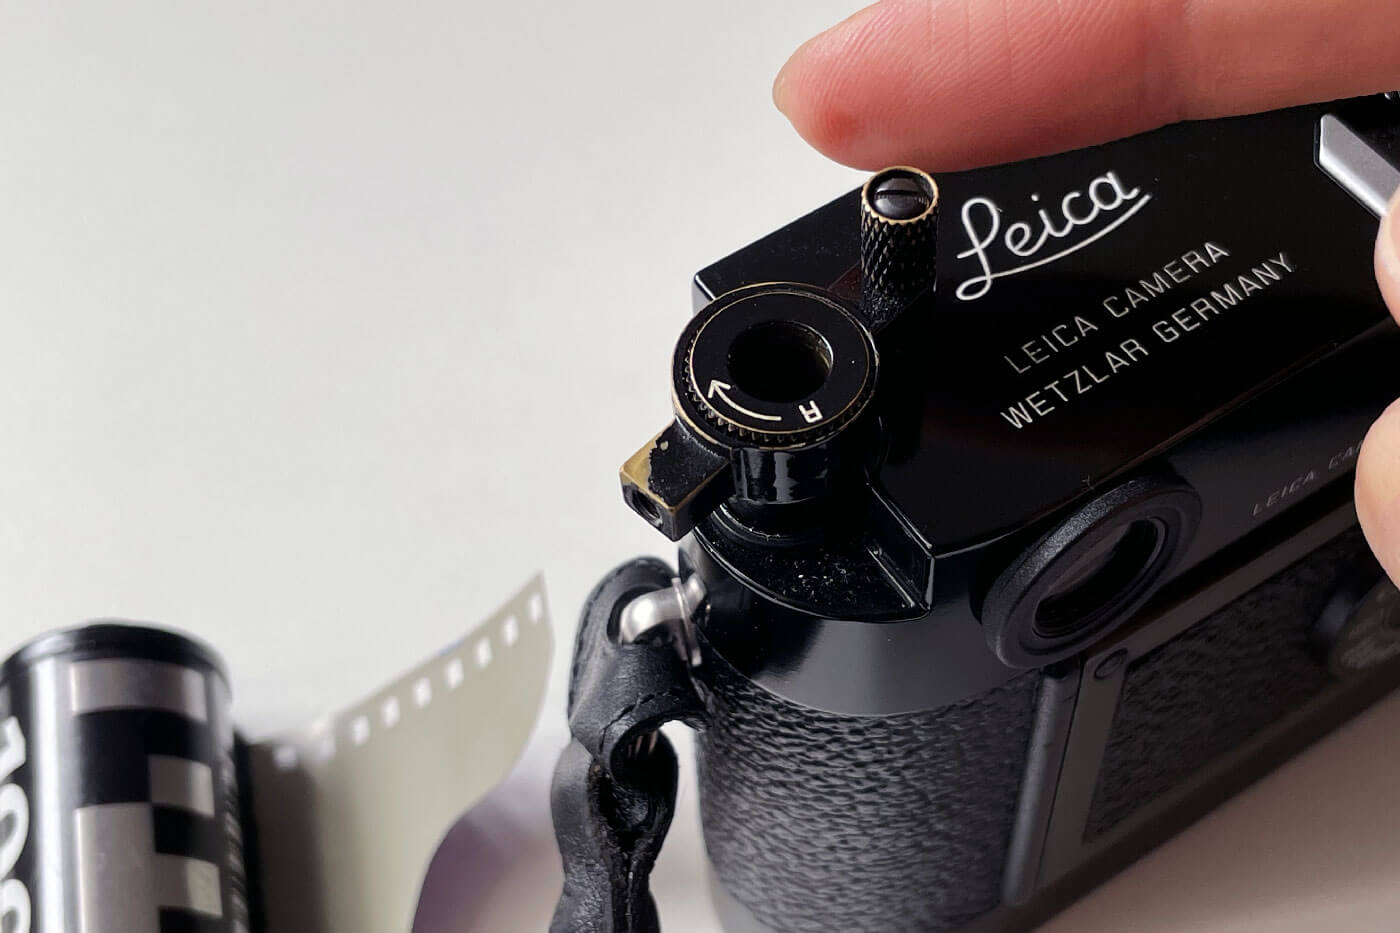 how-to-load-film-into-35mm-film-camera-135-extra-frame-properly-correct-way-best-check-beginner-tips-guide-advancing-first-frame-knob-rewind-tightened-tension